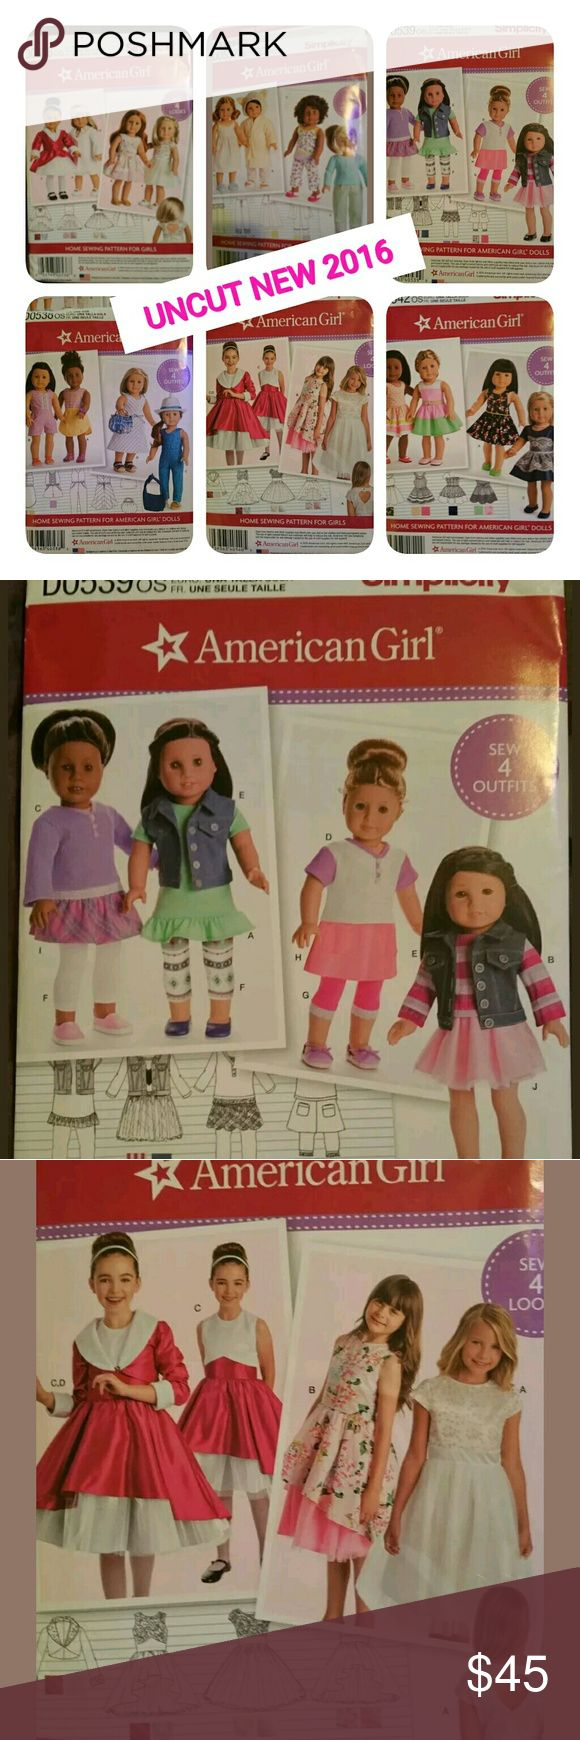 6 uncut American Girl Doll patterns Brand new, never used American Girl Doll patterns. Includes 5 doll patterns and 1 pattern for little girls look a like, she can match her dolls outfit. Each pattern retails for $22.95 each. simplicity  Other